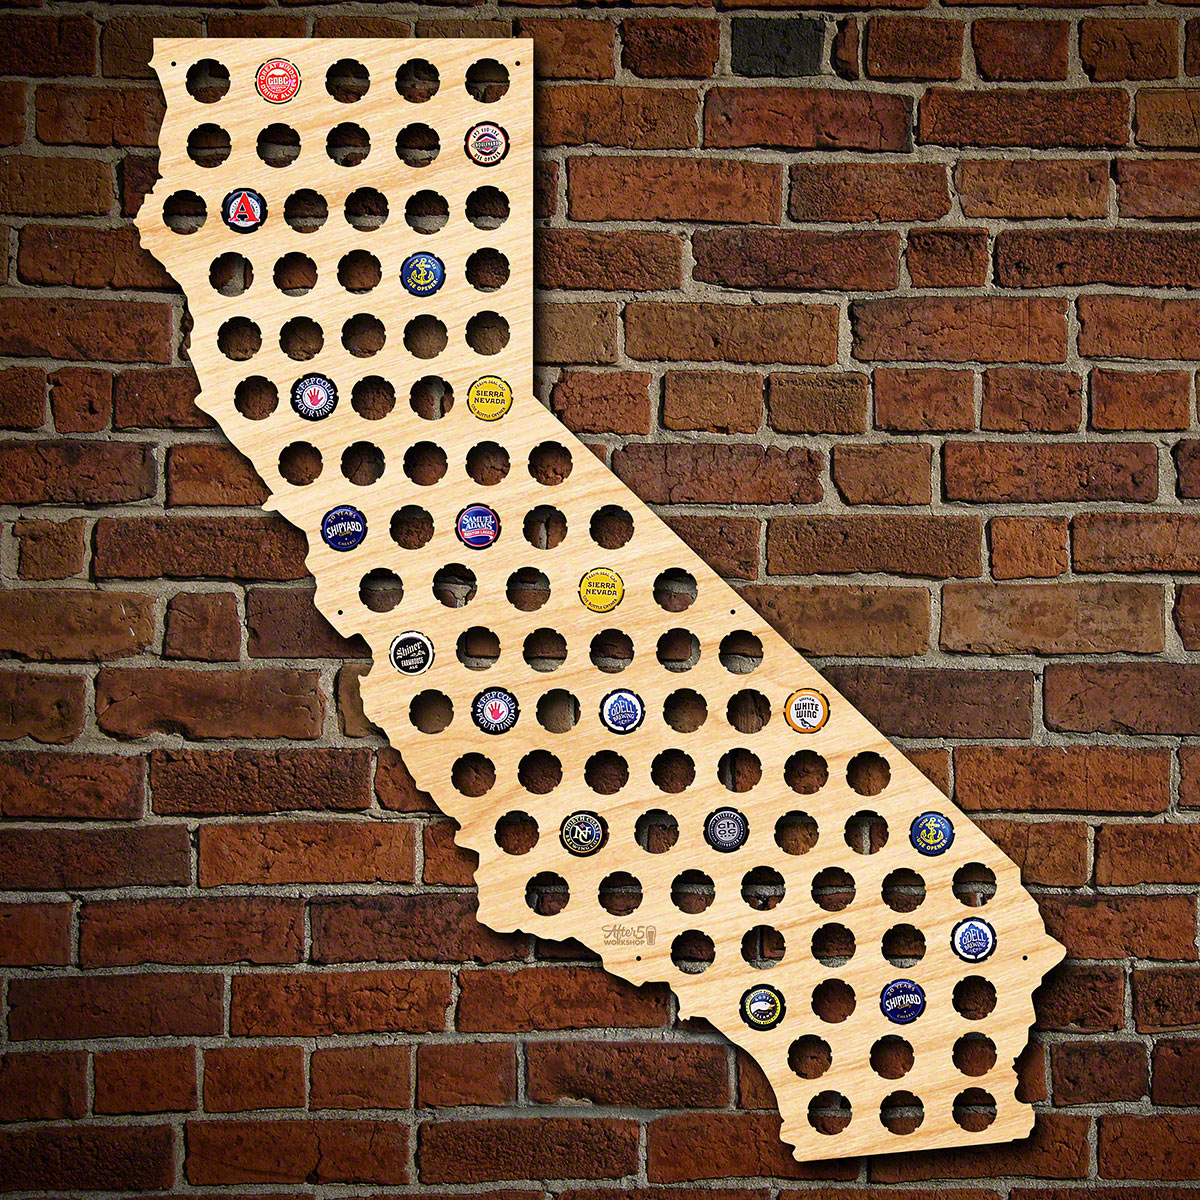 Giant-XL-California-Beer-Cap-Map